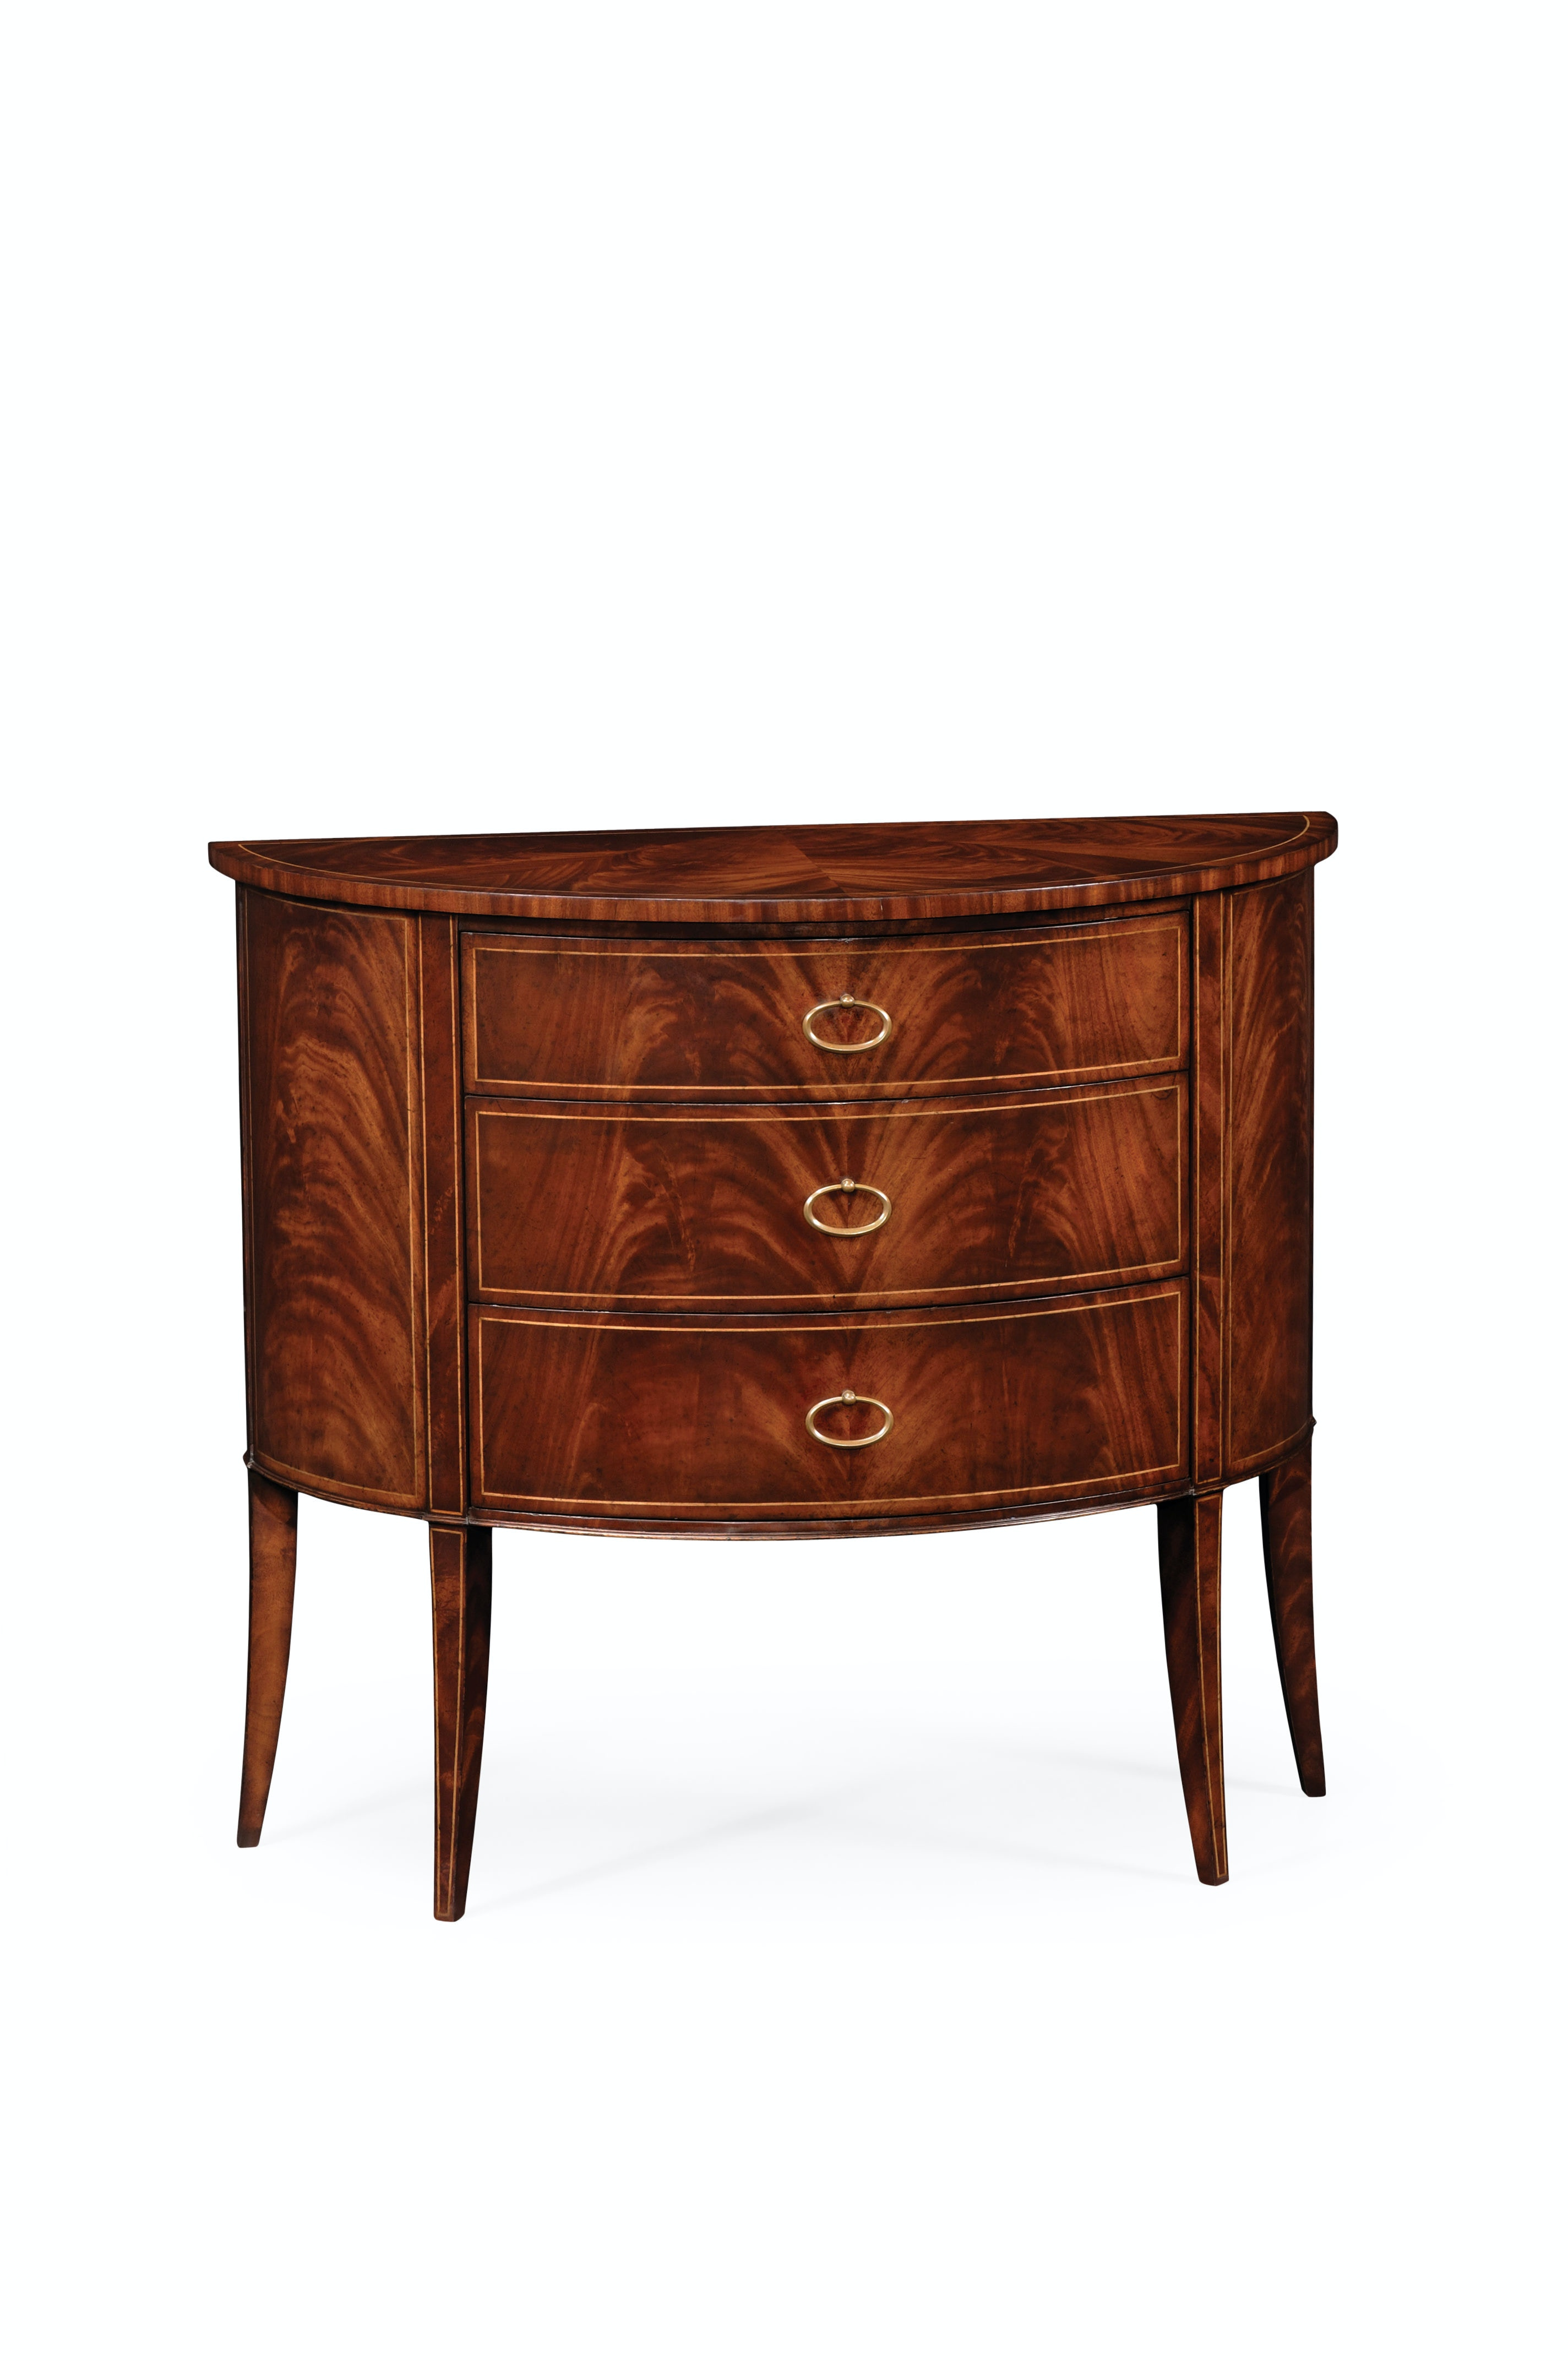 Jonathan Charles Biedermeier Style Mahogany Demilune Cabinet 494004 LAM  From Walter E. Smithe Furniture